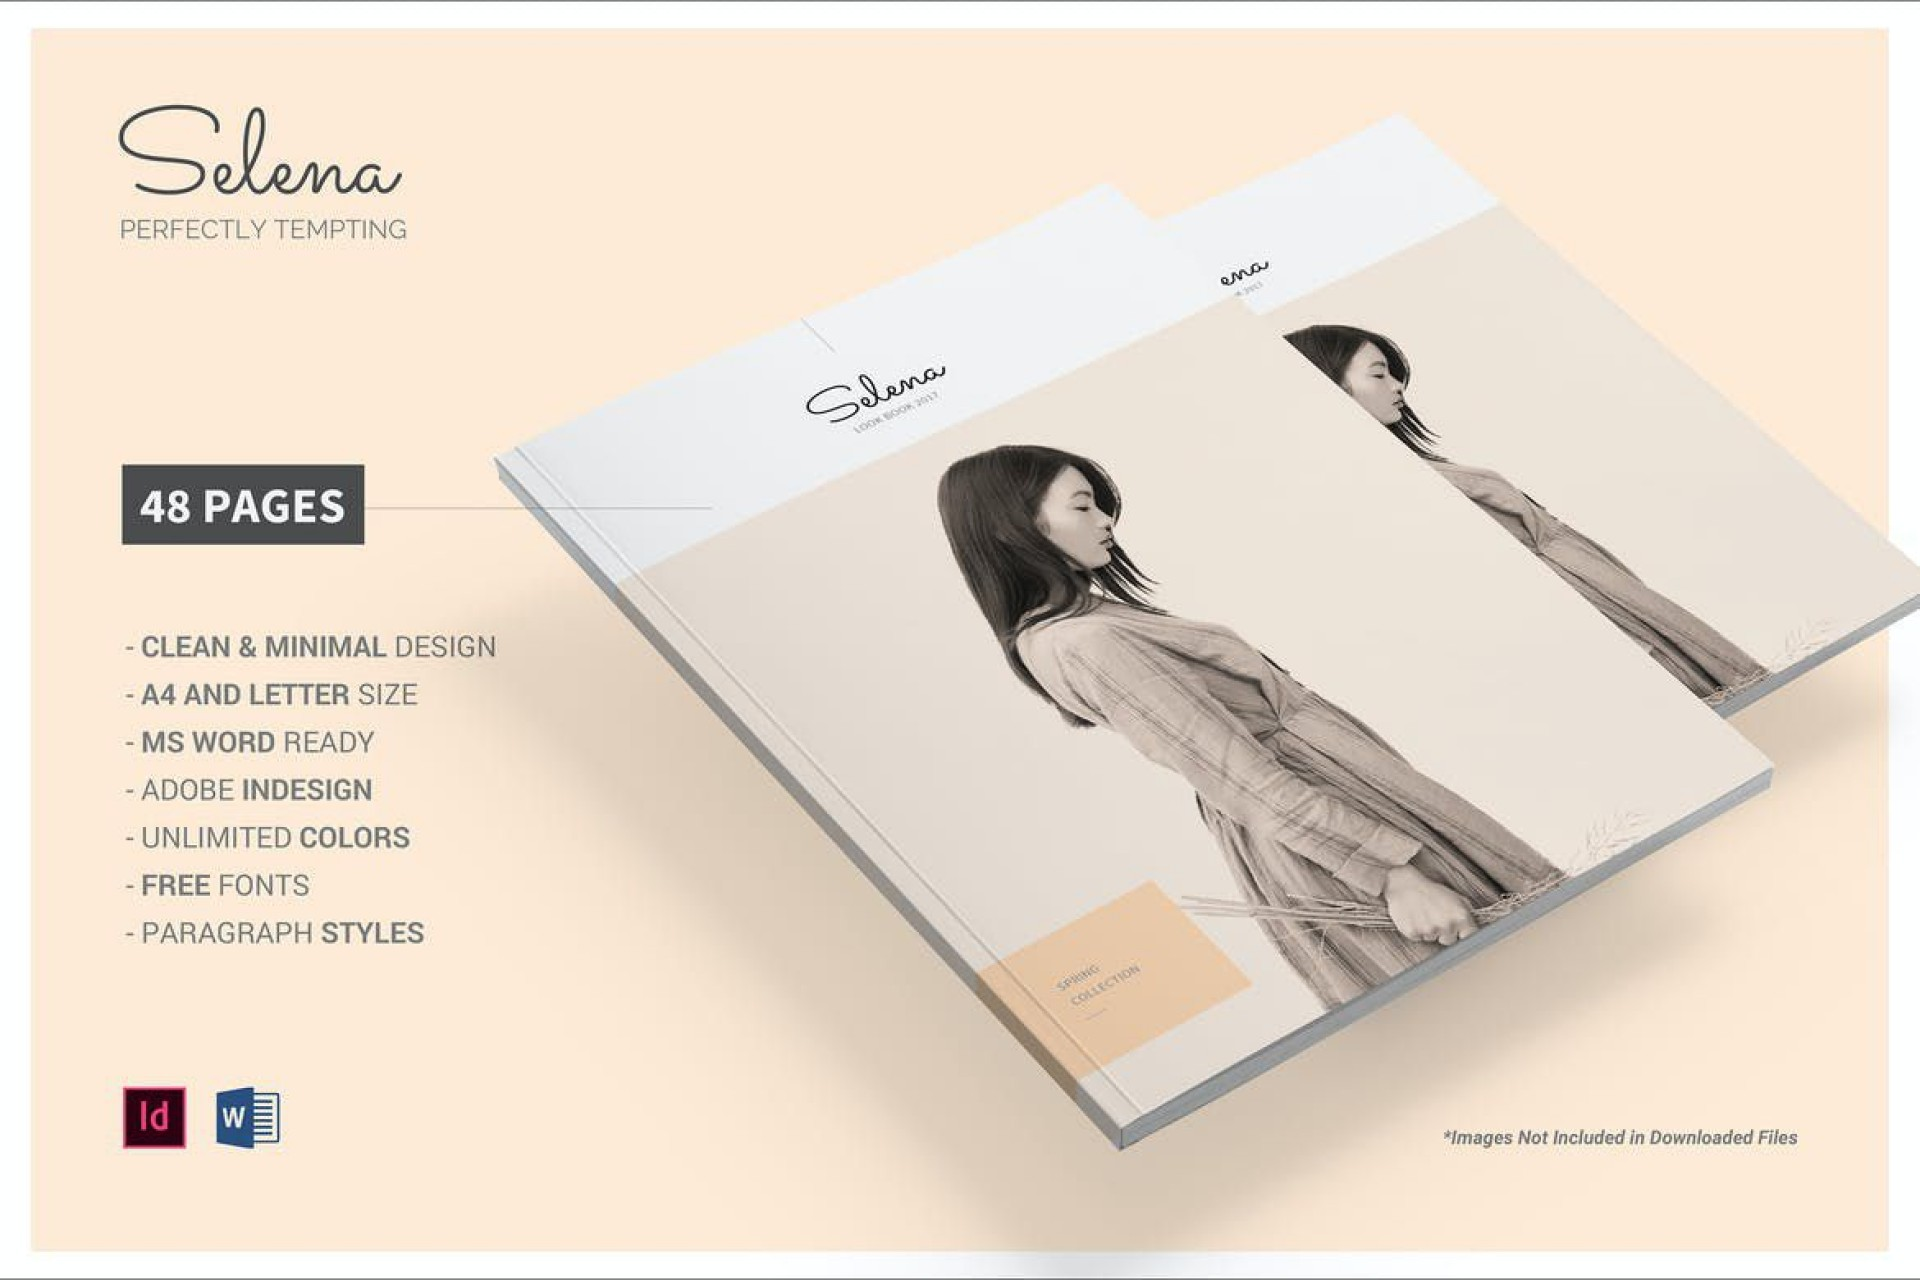 009 Striking Free Indesign Book Template Download High Resolution  Cs6 Adobe1920